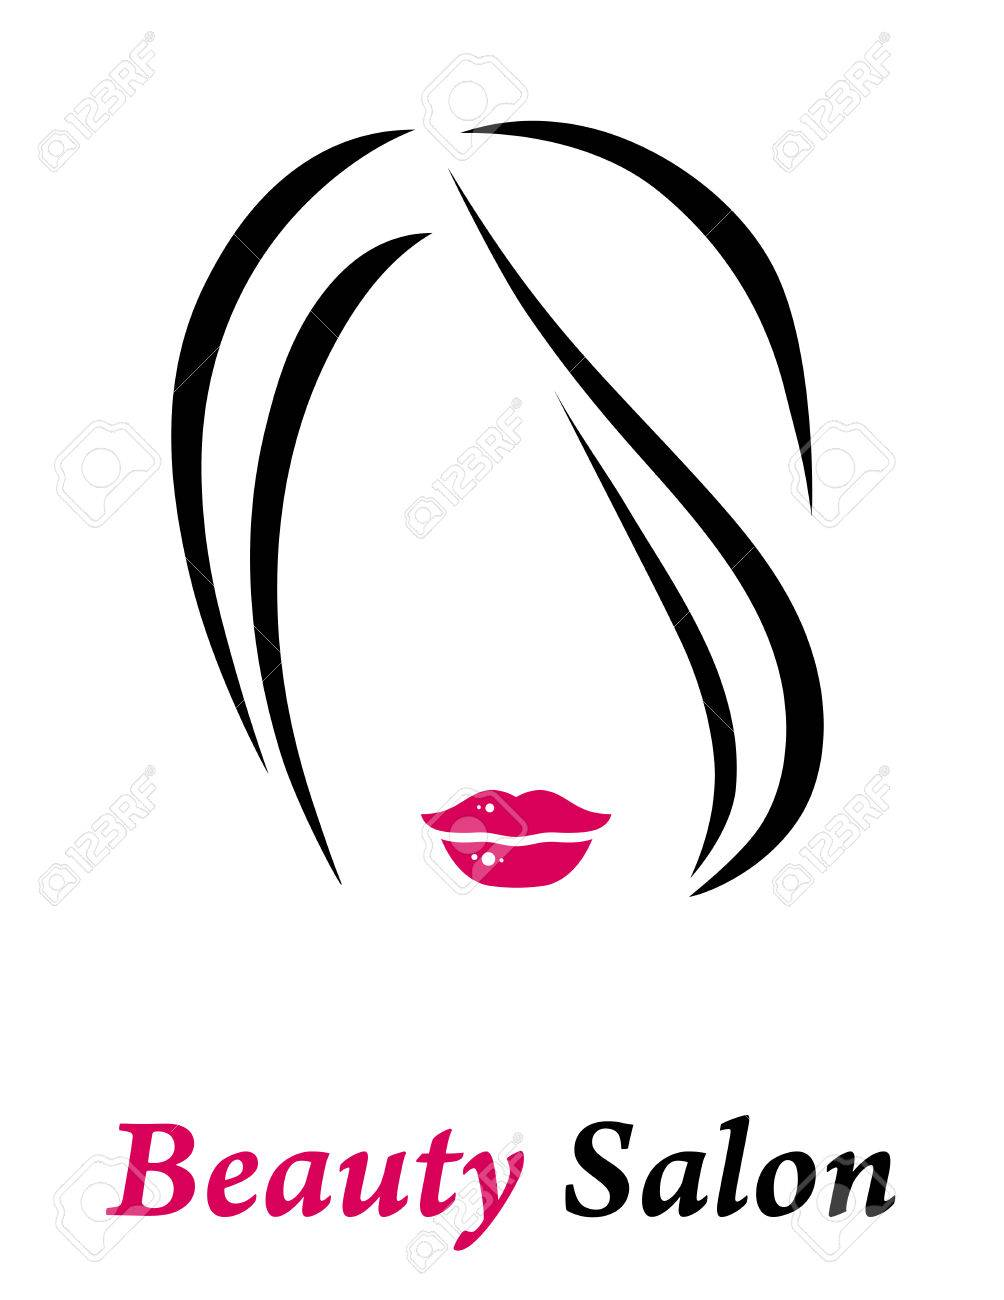 Hair Salon Sign With Isolated Woman Silhouette And Red Lips Stock Vector